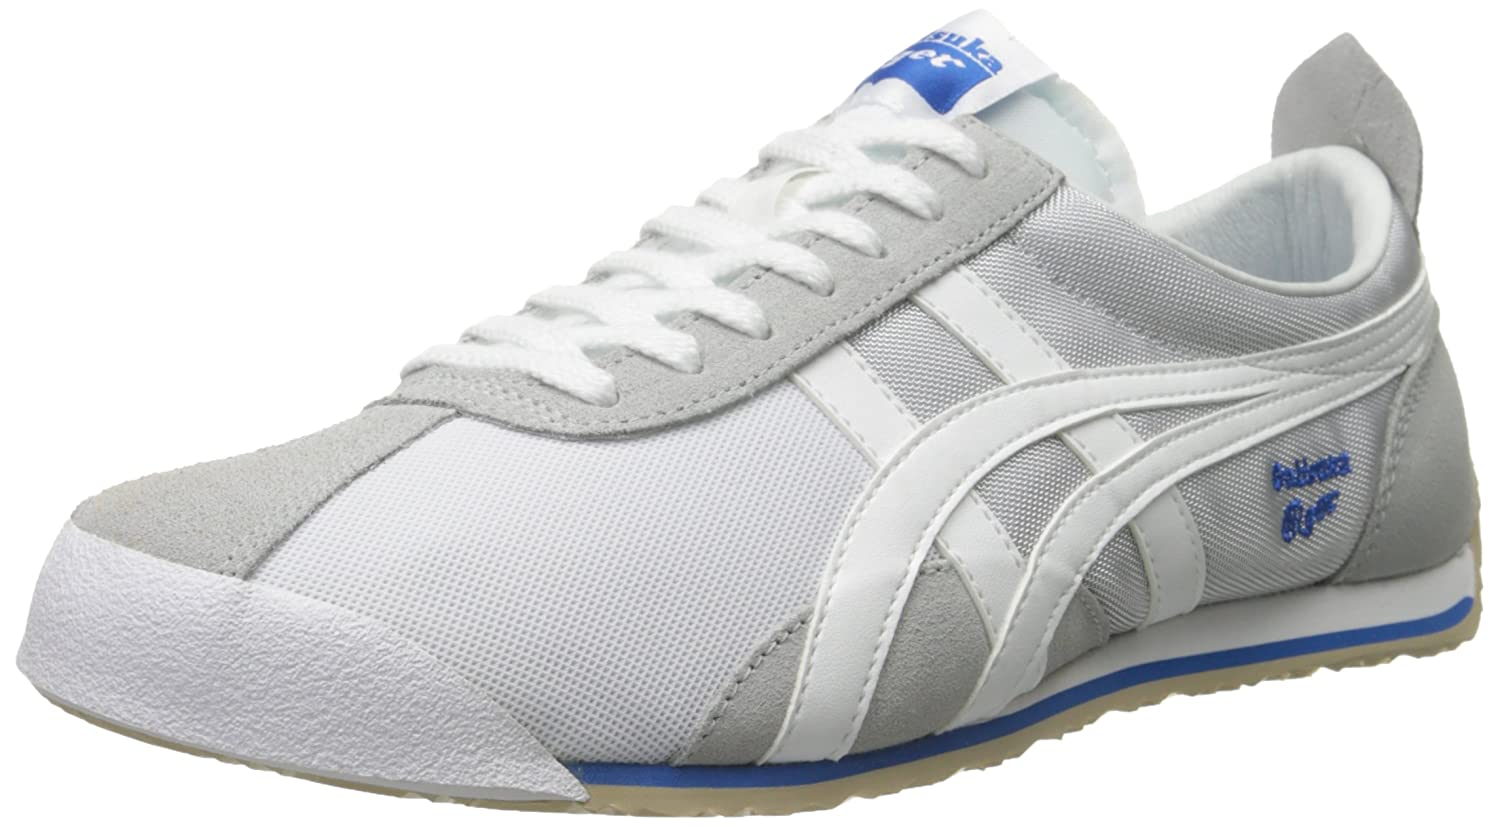 buy online d0f85 a0ba0 Onitsuka Tiger Fencing Shoe, White/White, 10 M US: Amazon.co ...